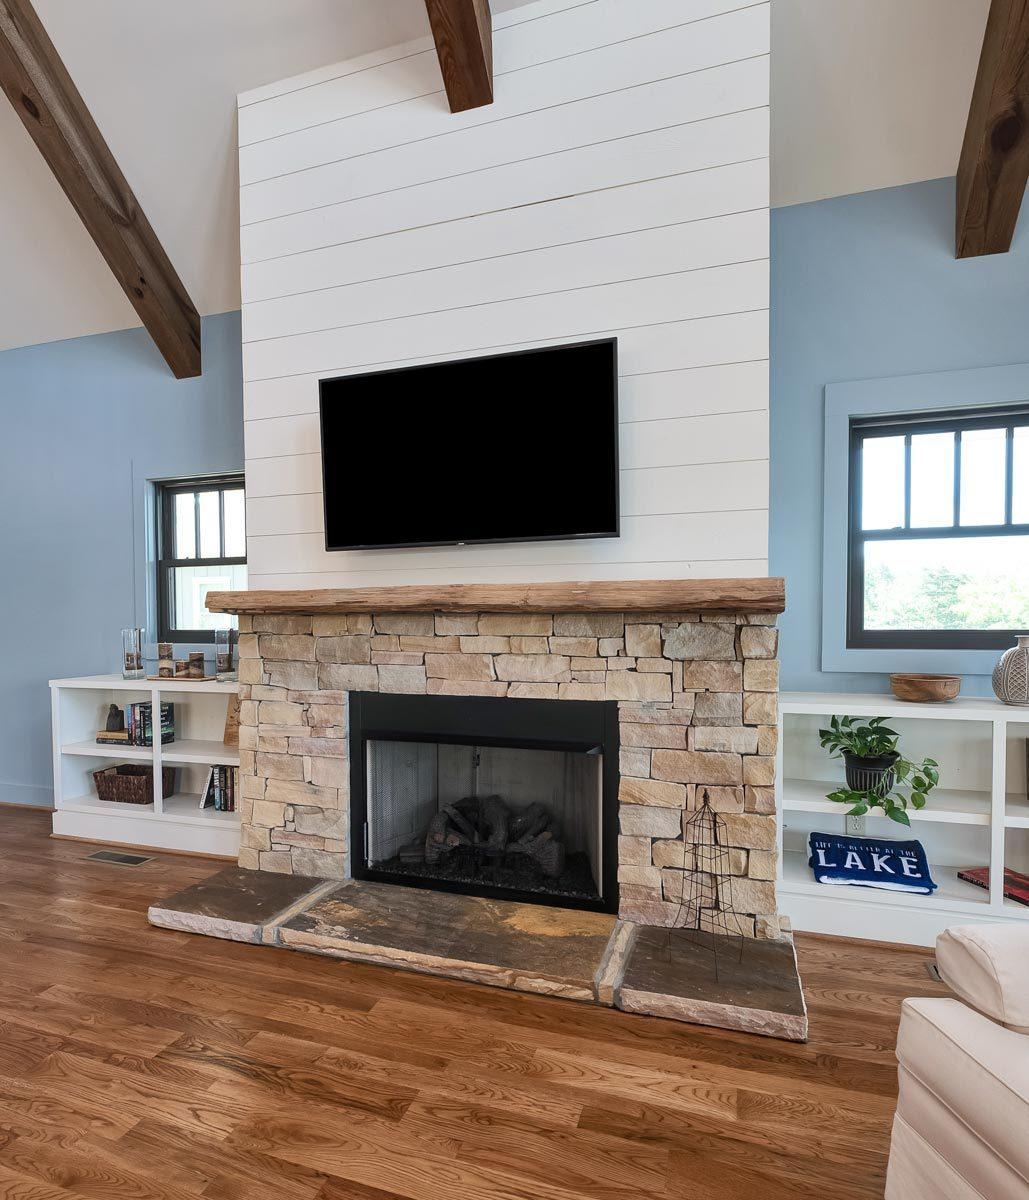 A closer look at the fireplace surrounded by white shelves and TV.